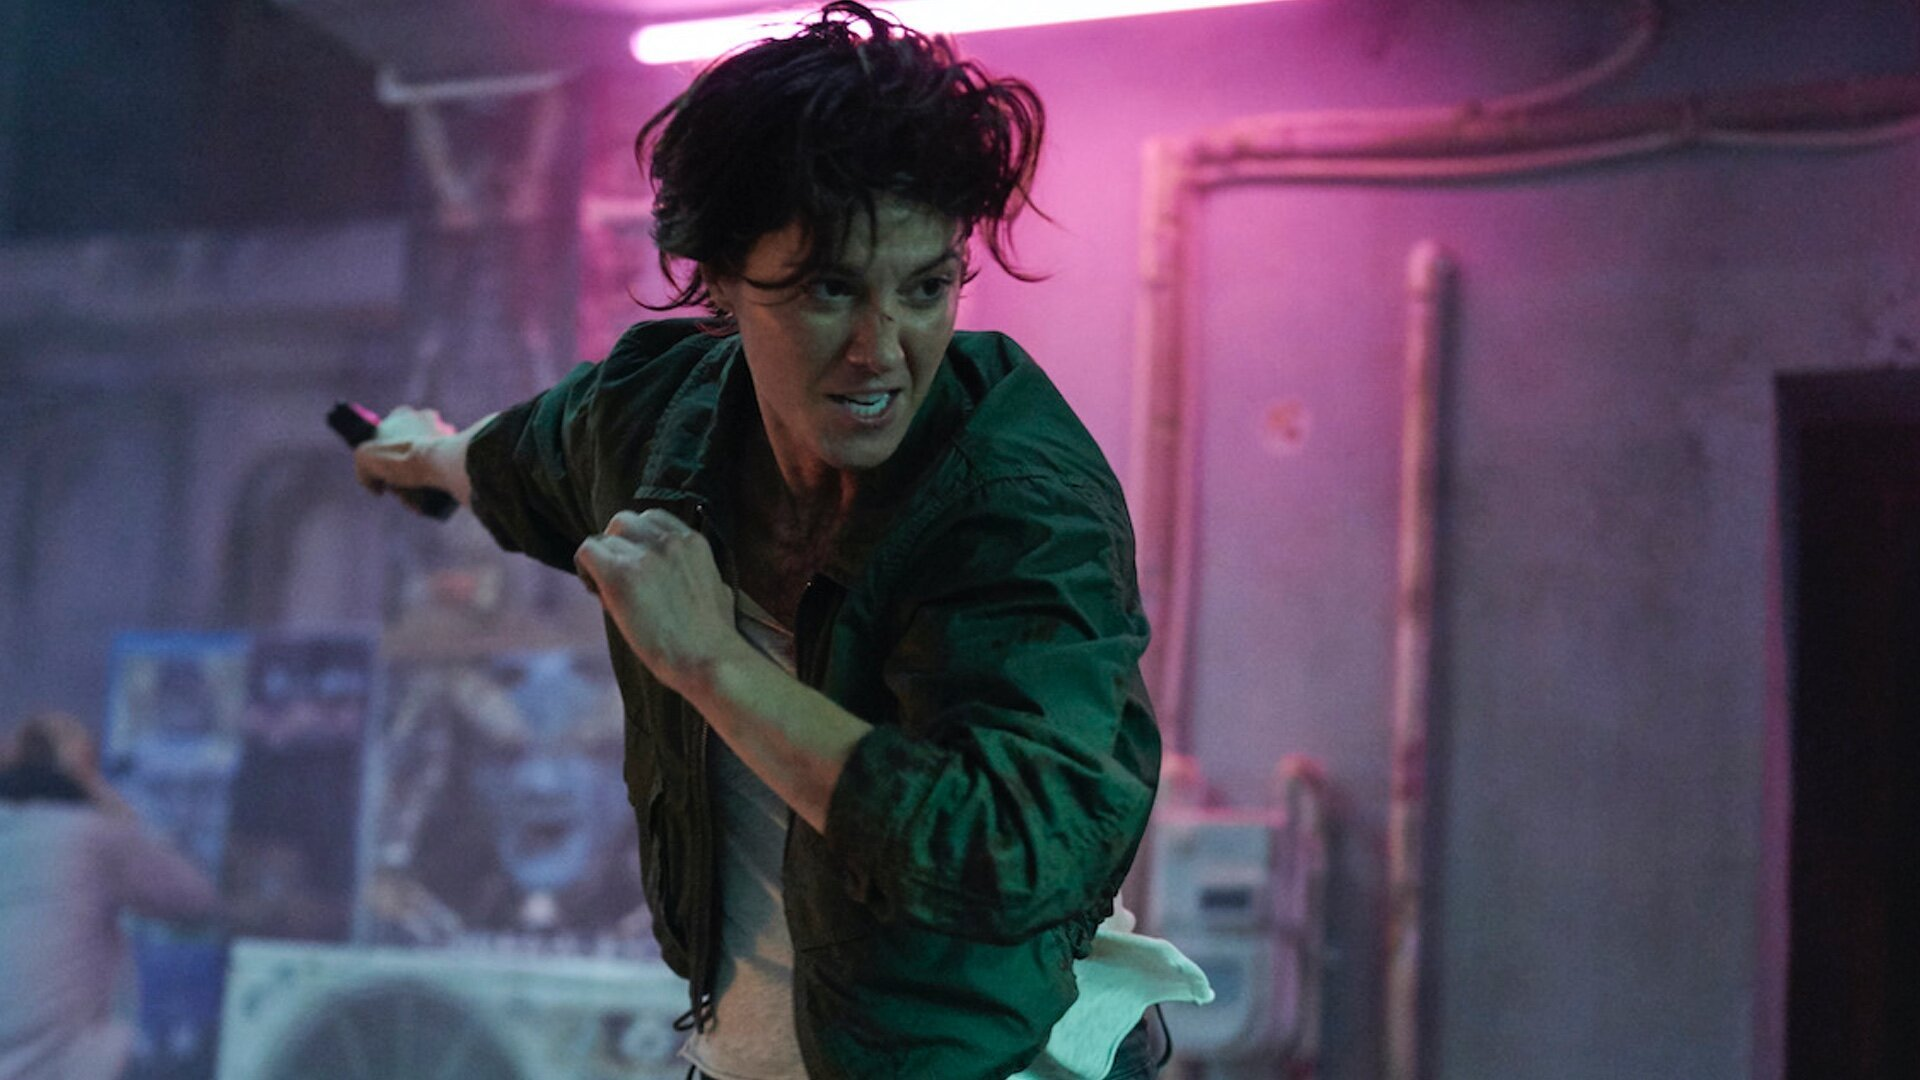 Kate Review: A Predictable and Dull Rehash of Better Action Movies